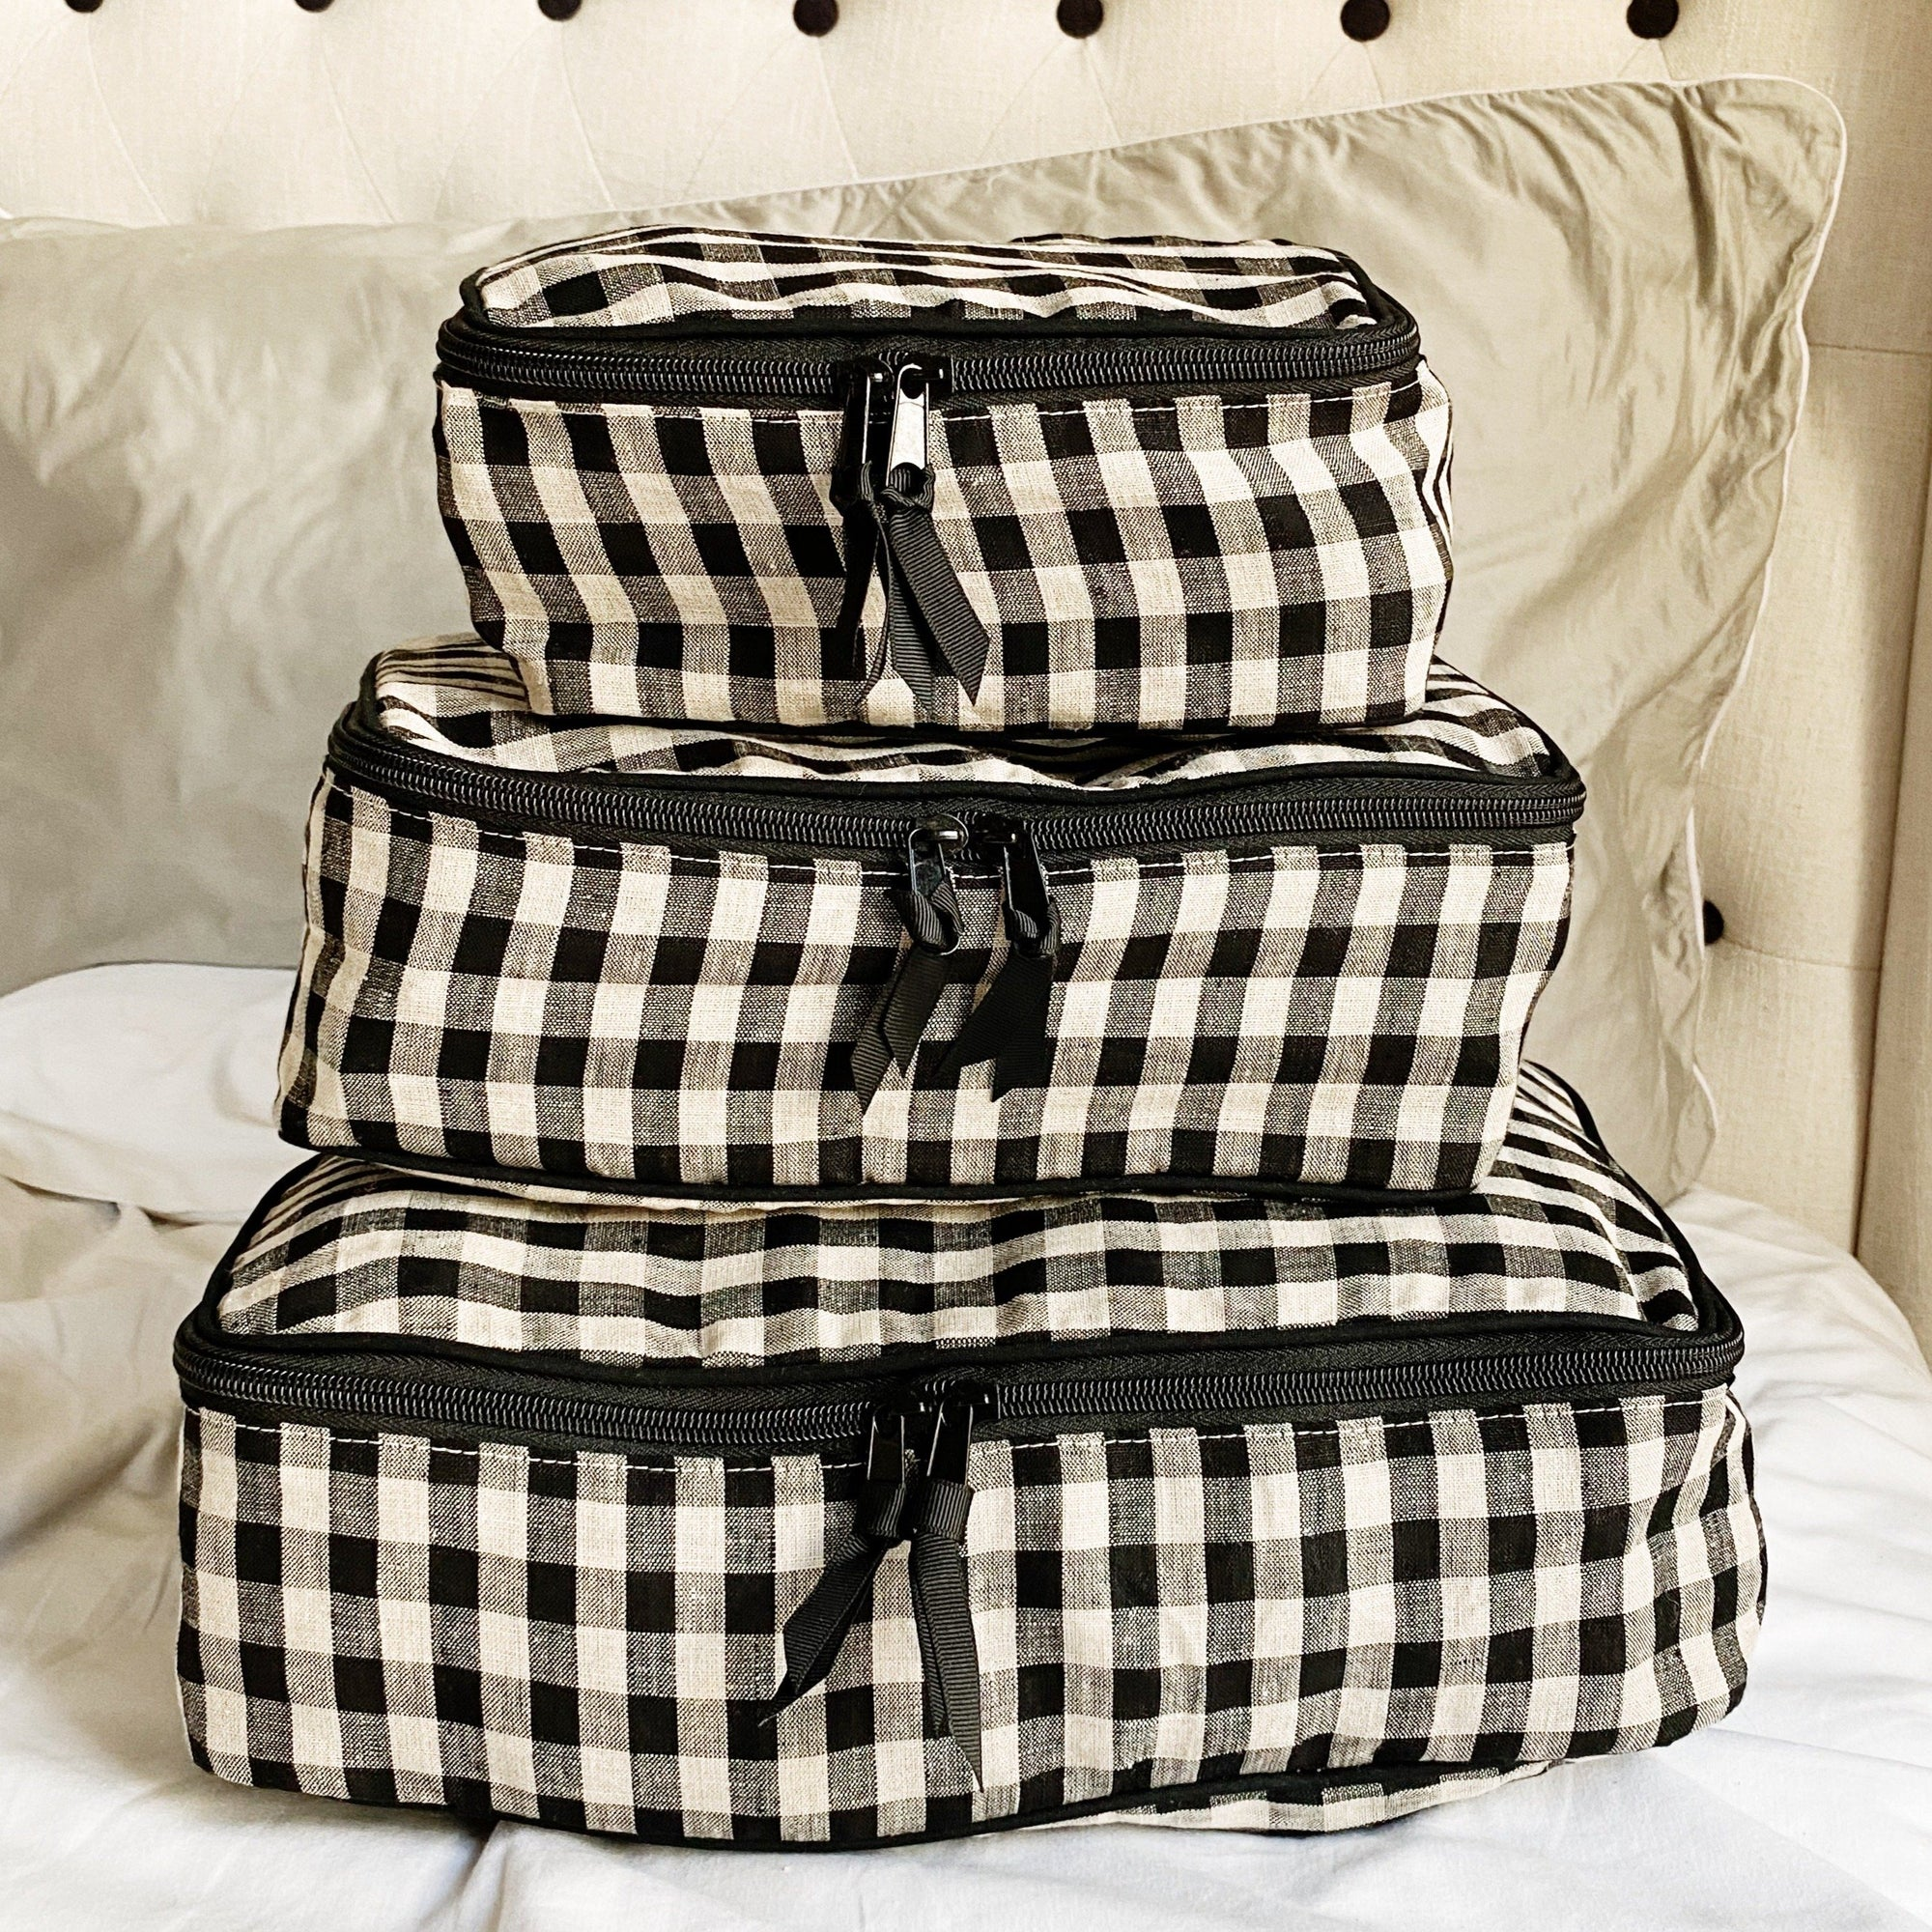 Packing Cubes Gingham Checkered Linen - Bag-all Europe